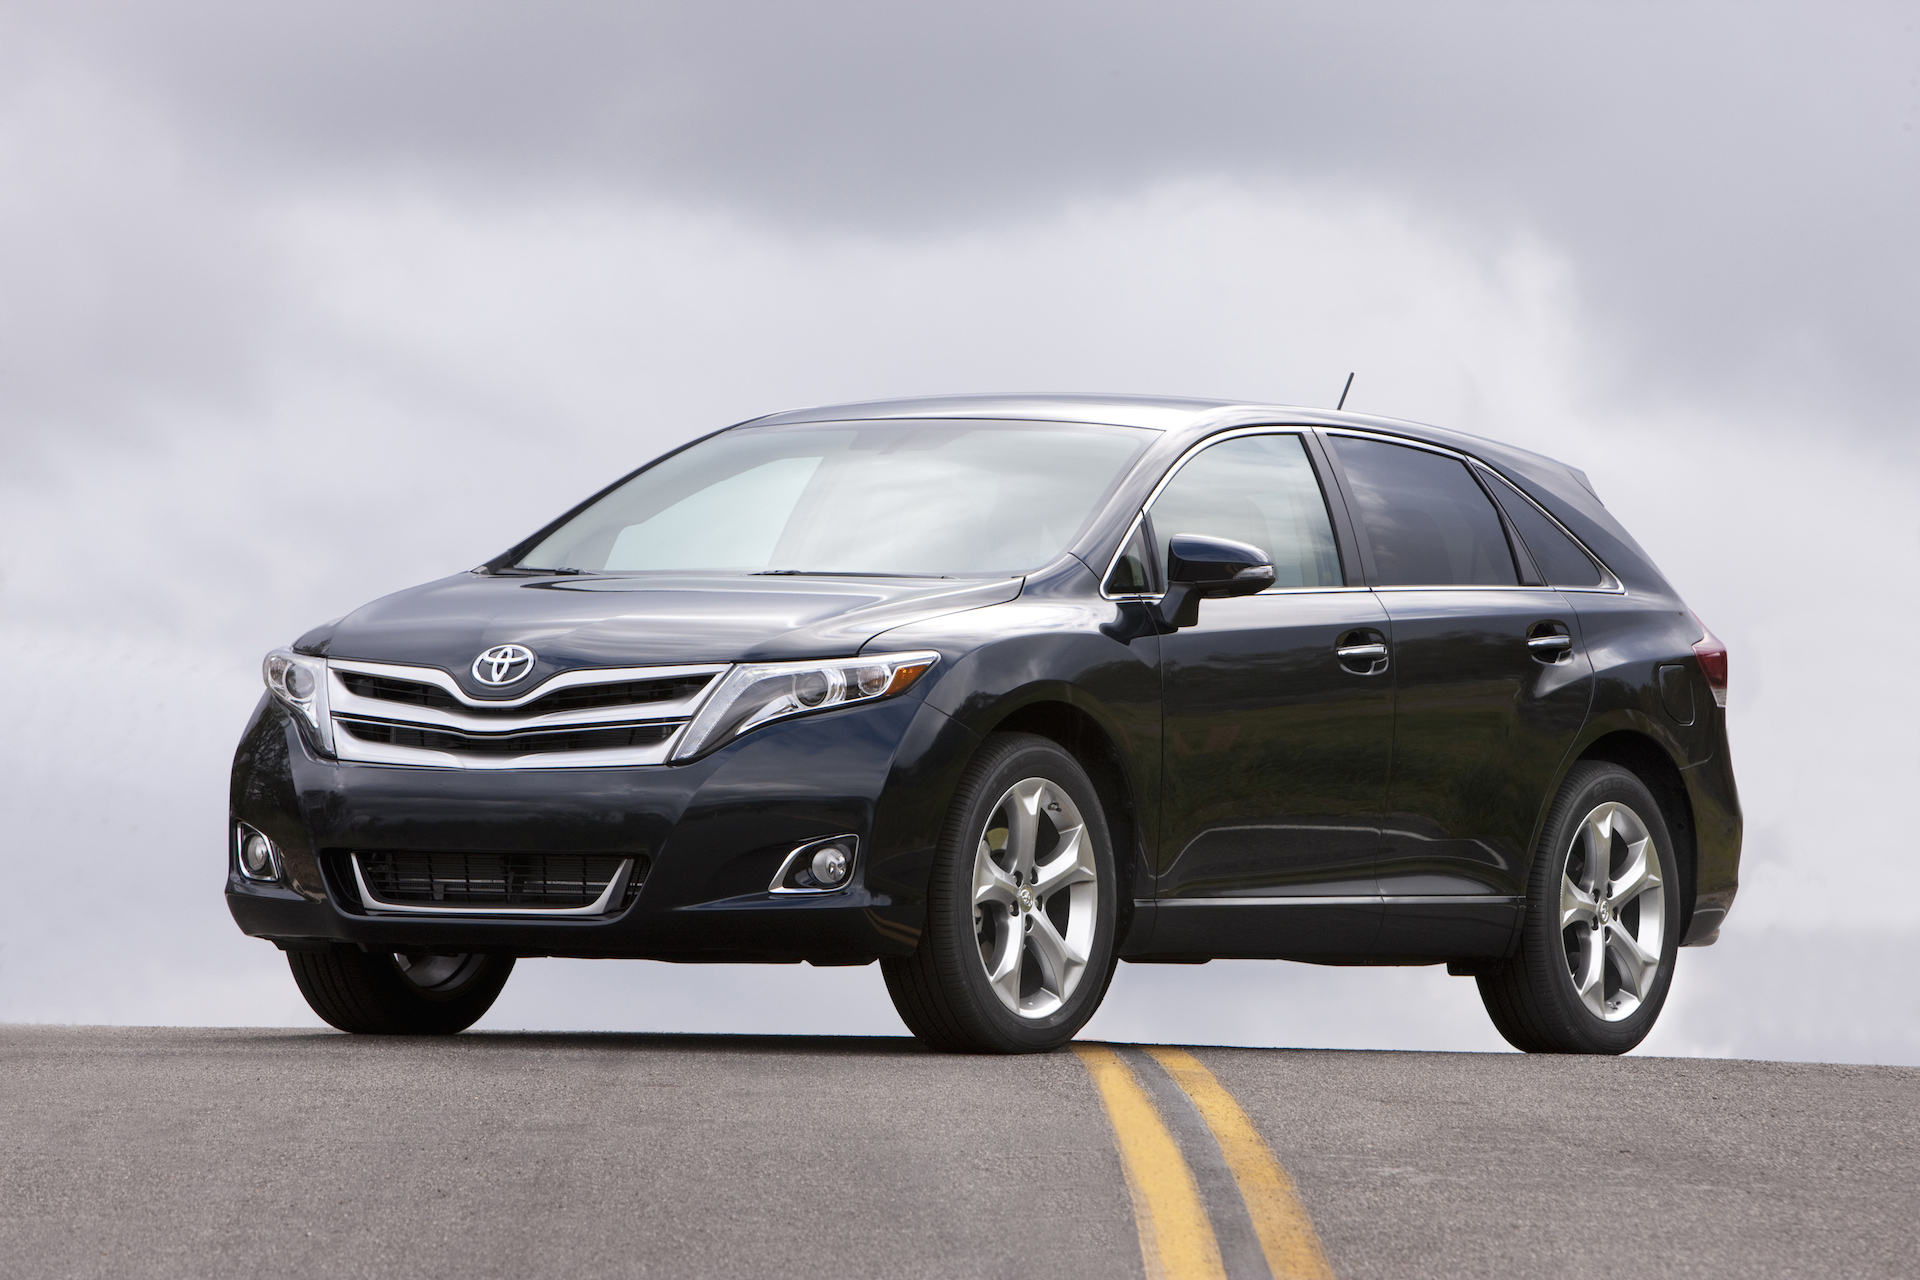 new and used toyota venza prices photos reviews specs the car connection. Black Bedroom Furniture Sets. Home Design Ideas